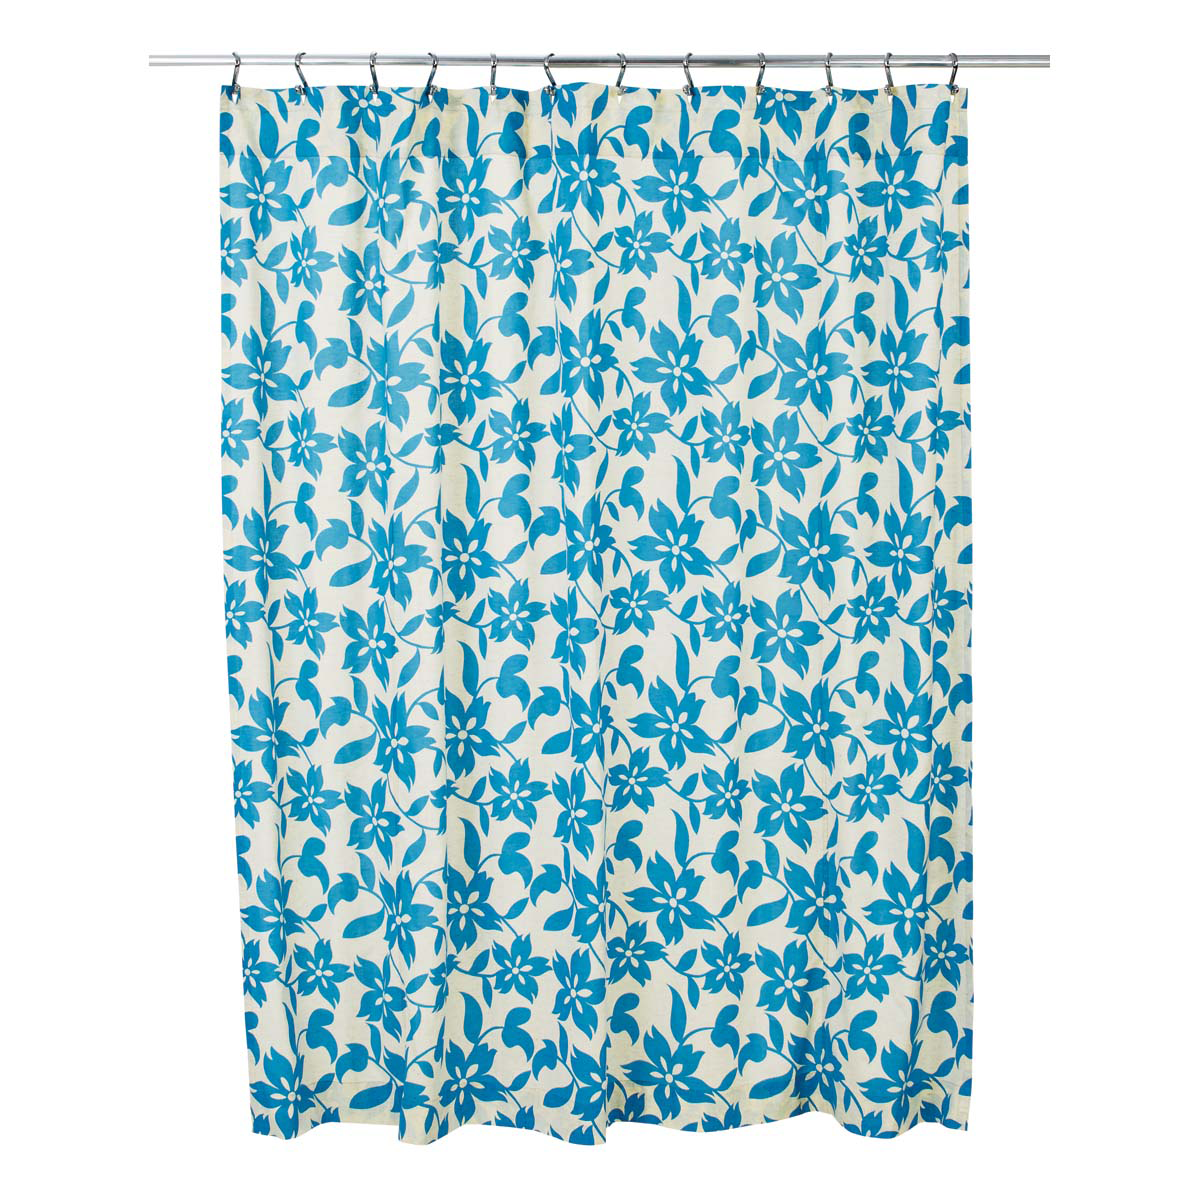 Briar Azure Shower Curtain - Sale Priced - $12 Off - Vhc Brands